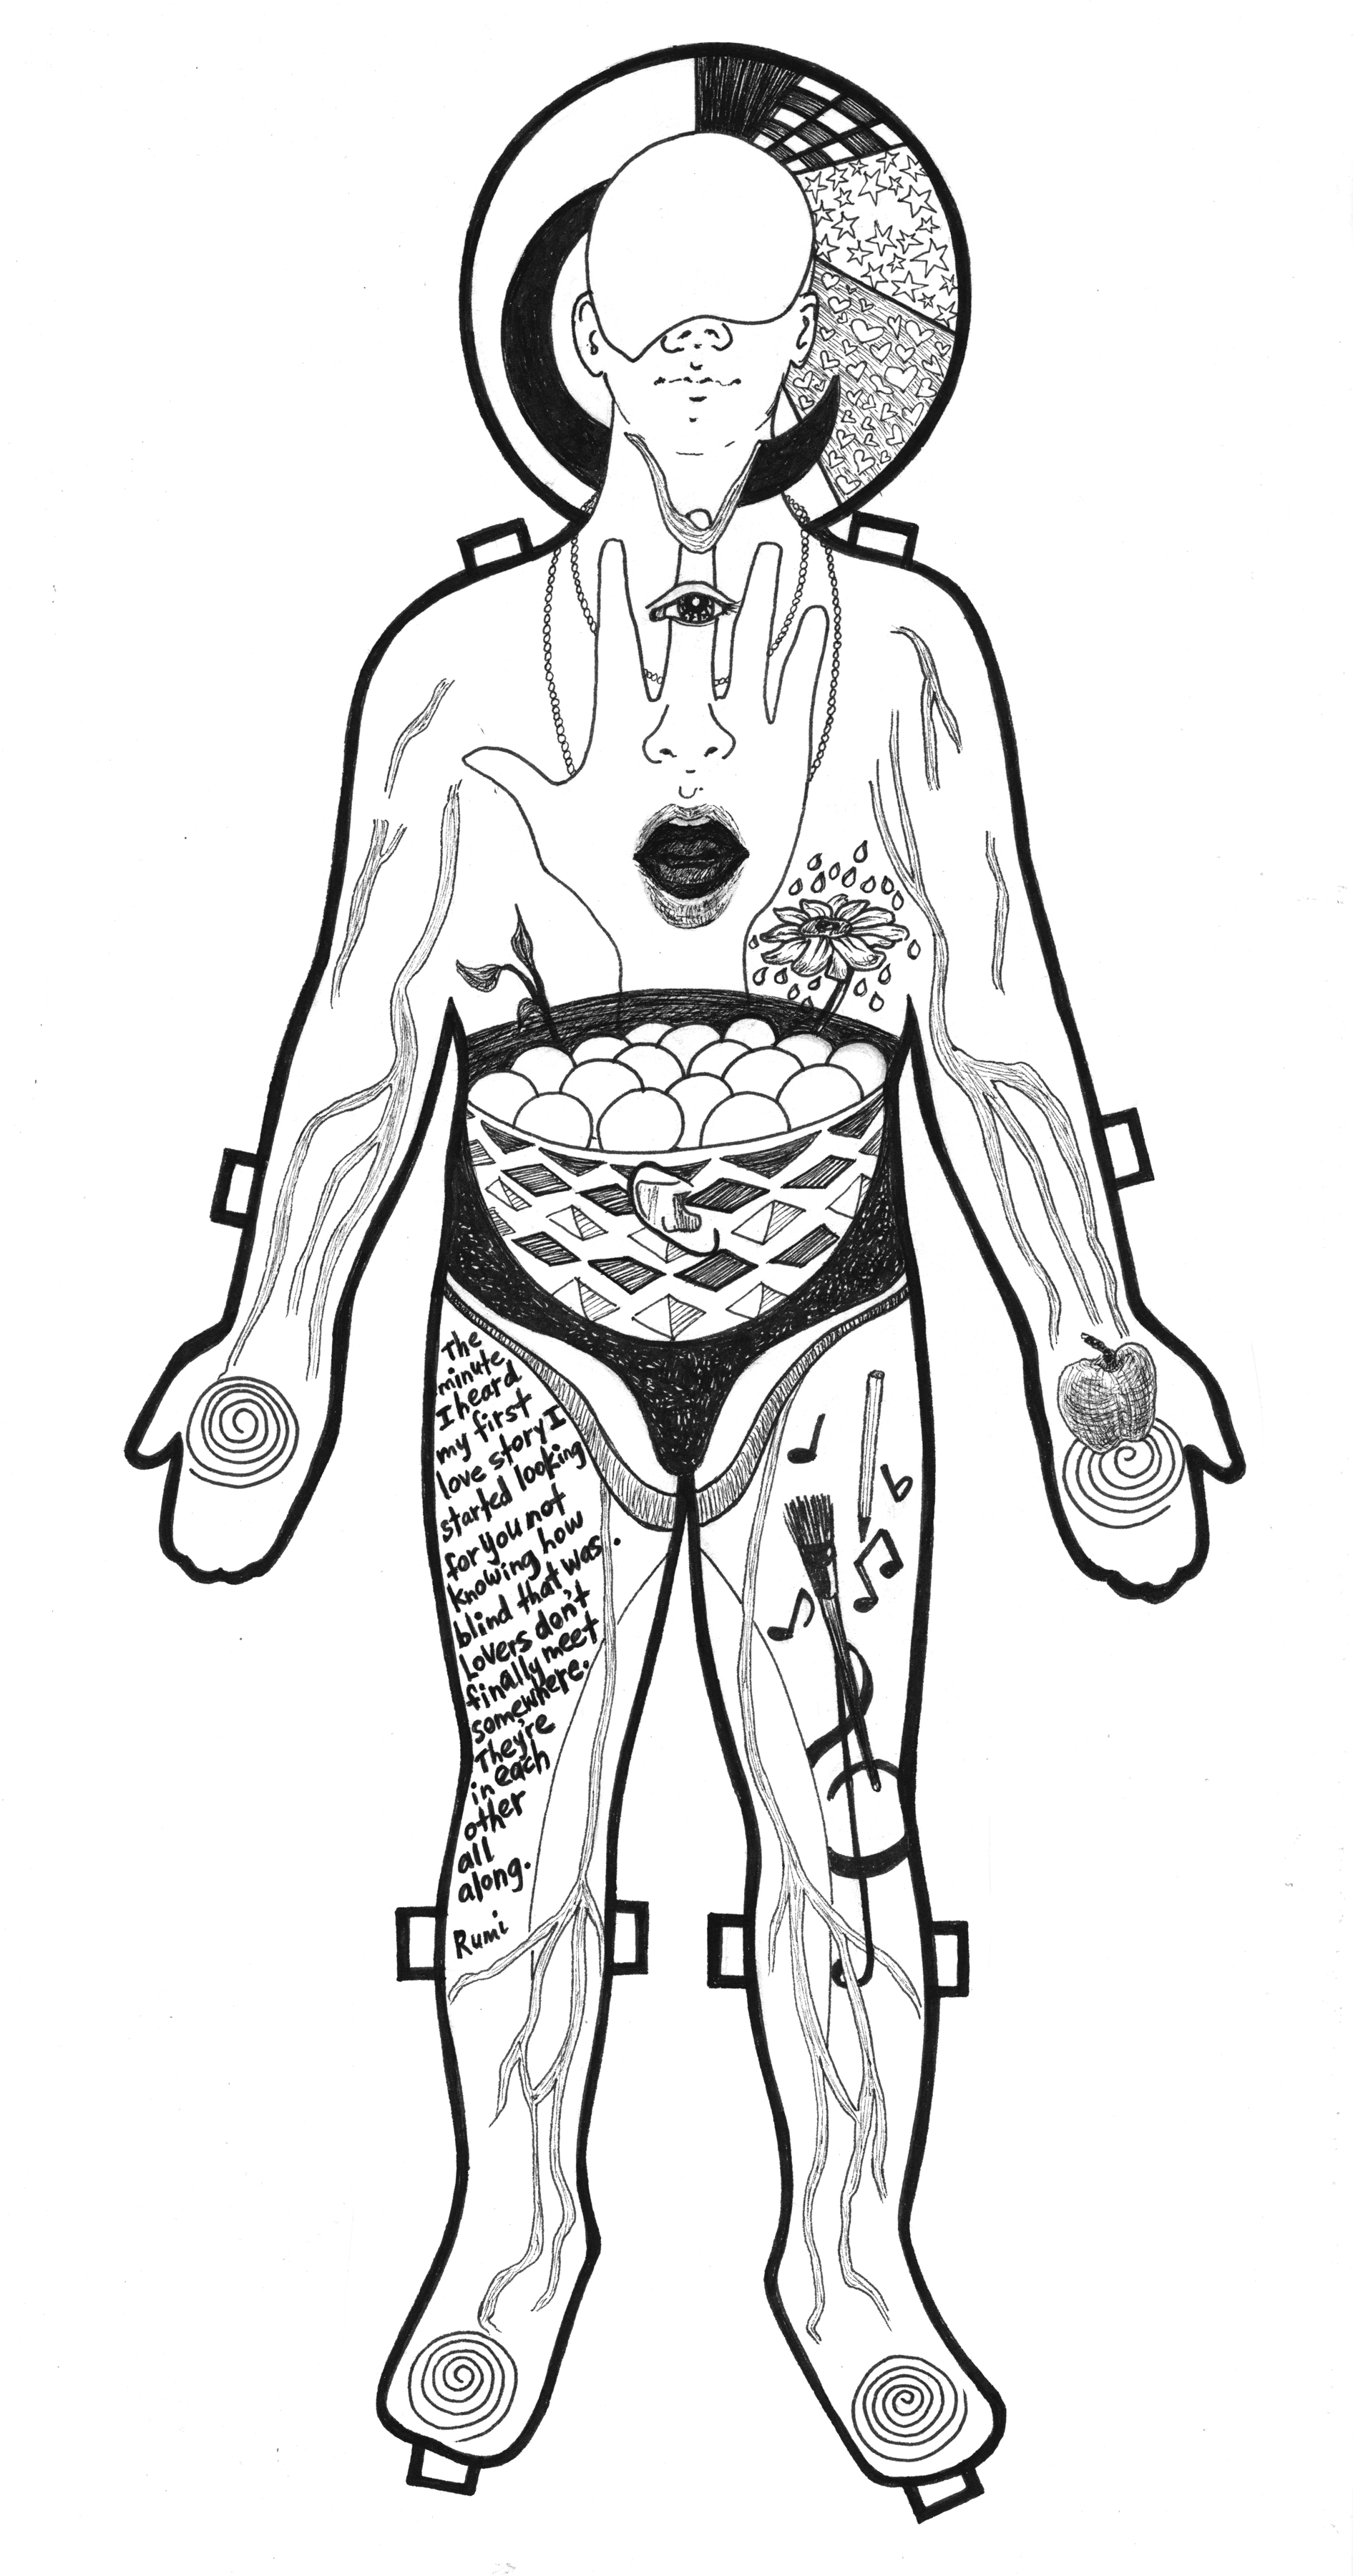 drawing, marker, sensual, men, male, paper dolls, blood coursing, senses, quotes